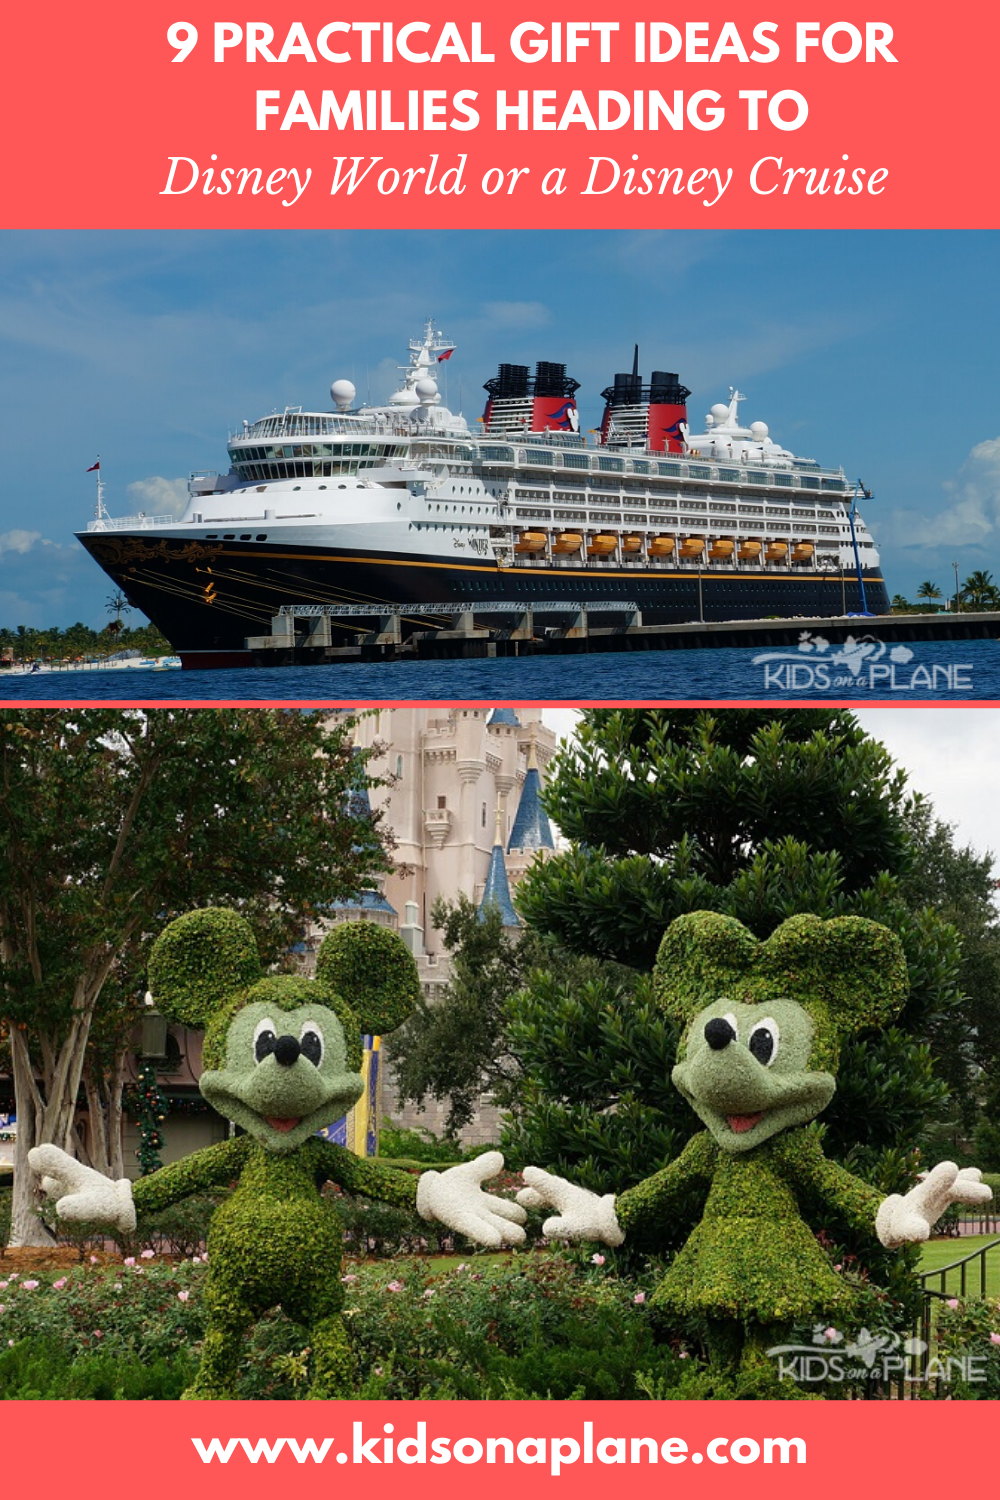 Practical Gift Ideas for Families Going to Disney World or Disney Cruise